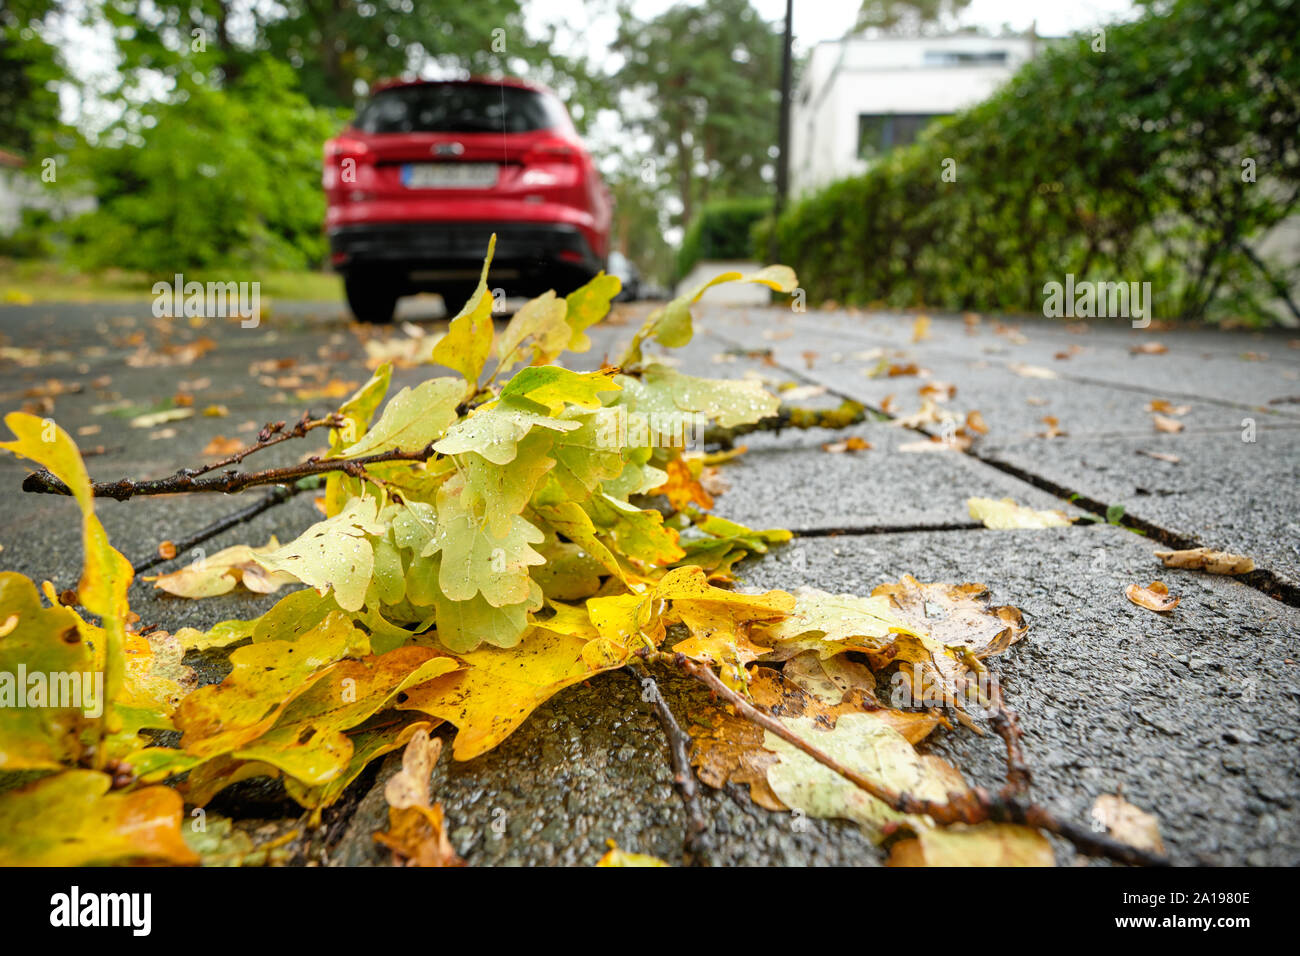 Nuremberg, Germany - September 23, 2019: Wet yellow autumn leaves are lying on the pavement with a car parking in front on a rainy autumn day in Germa Stock Photo